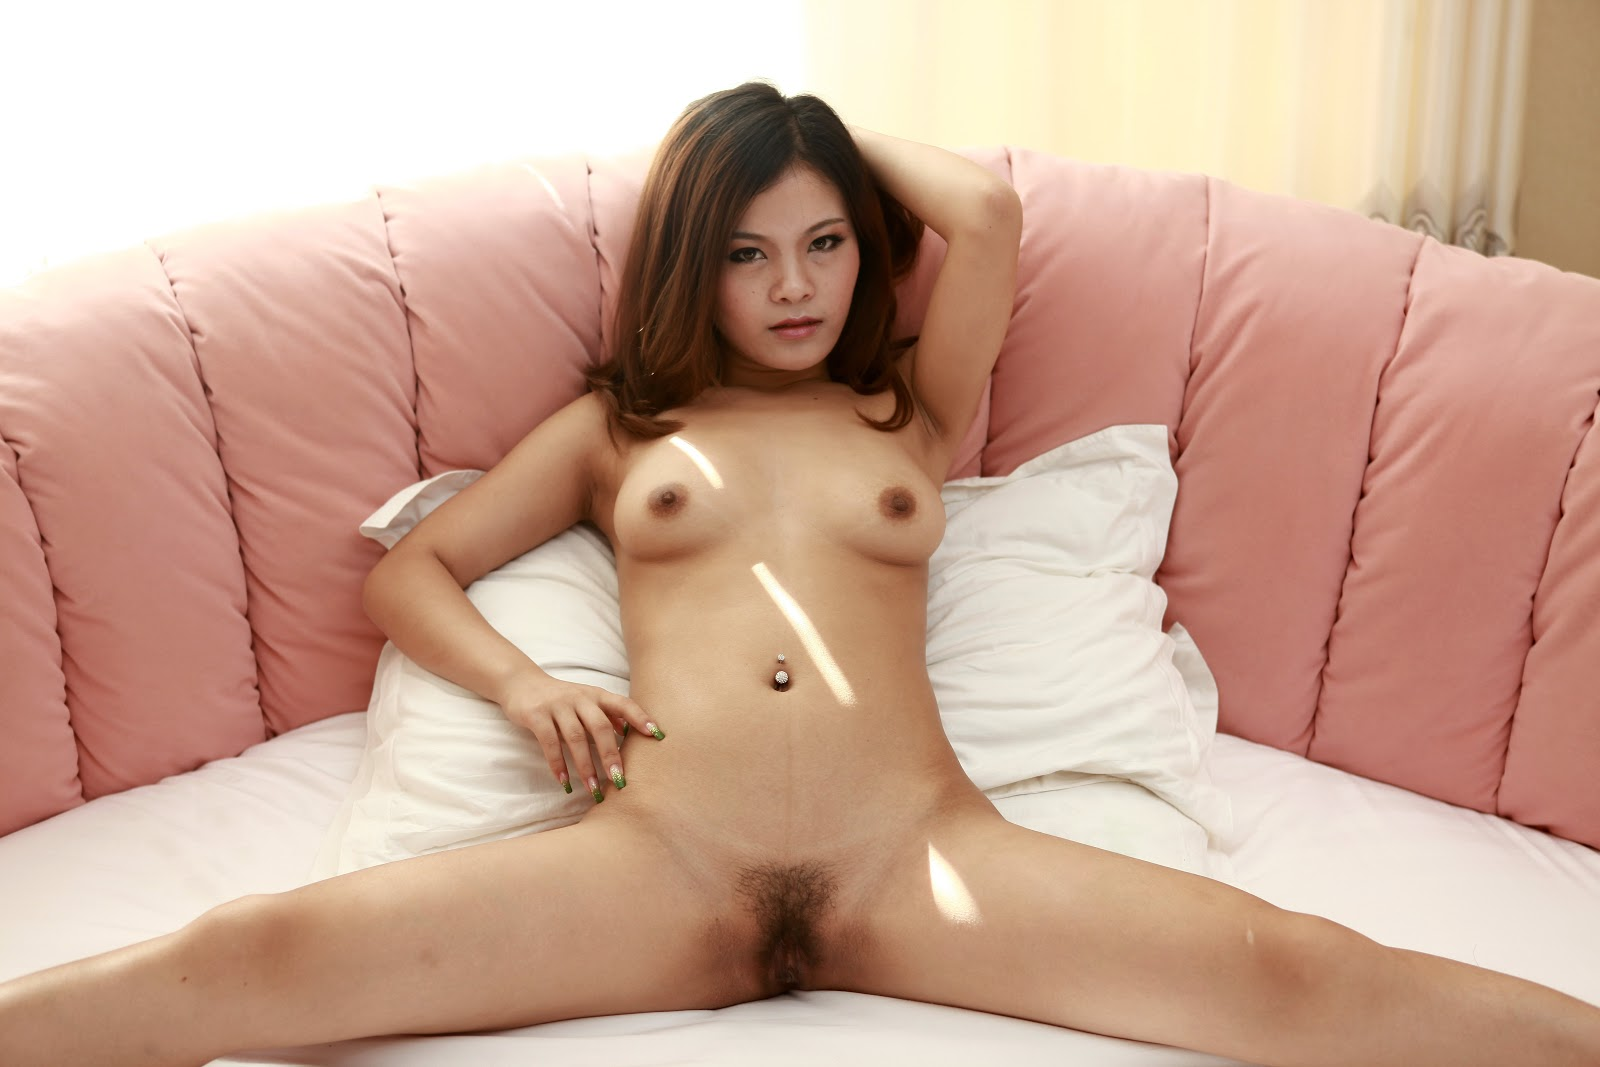 Chinese Nude_Art_Photos_-_260_-_YangYang_Vol_9.rar